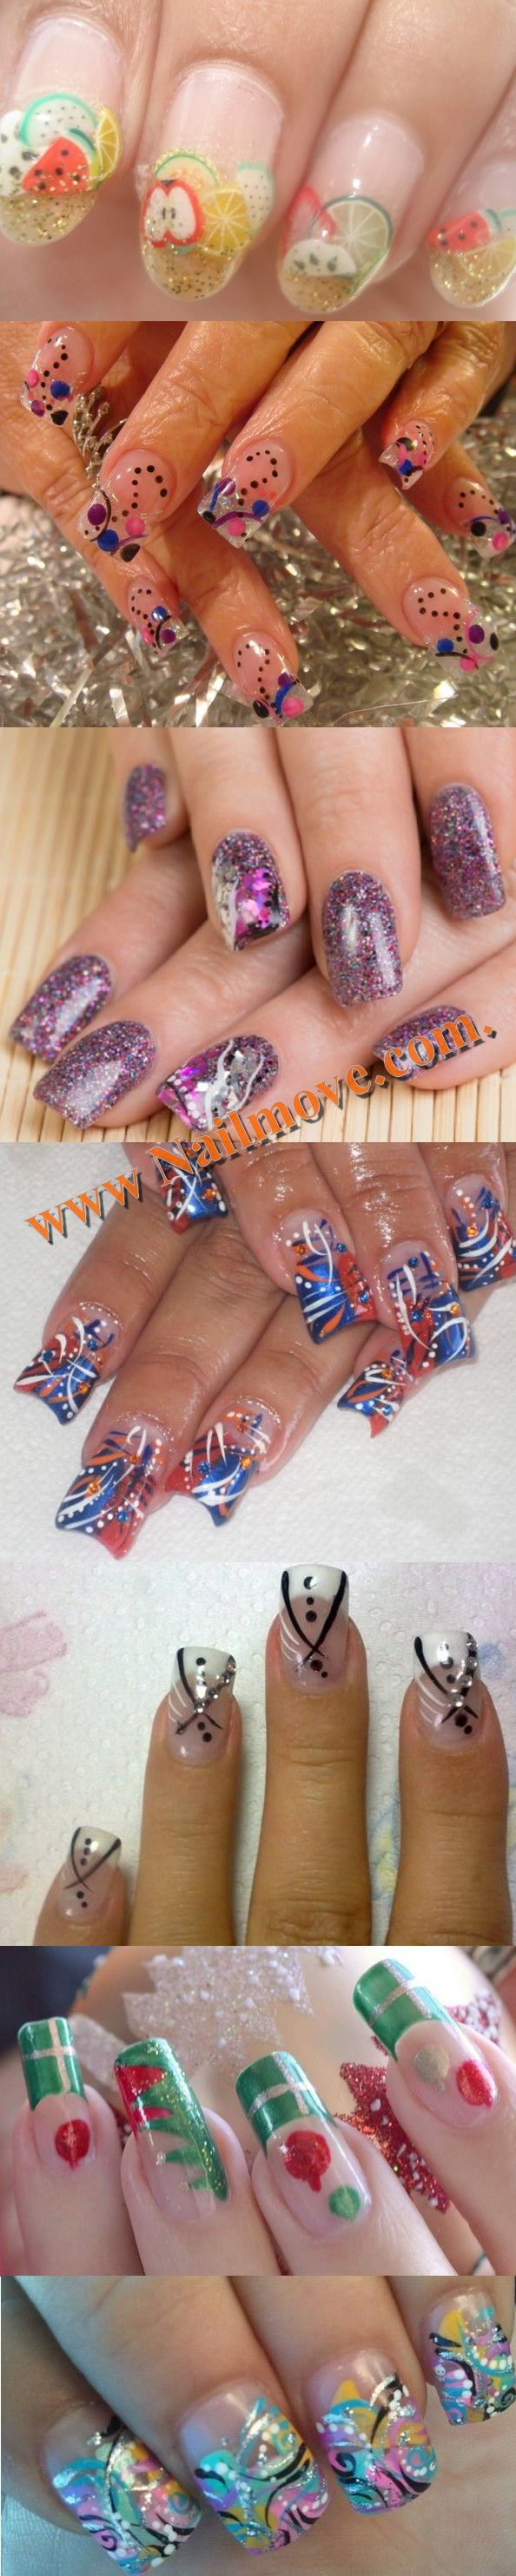 25 Best Ideas About Beginner Nail Designs On Pinterest Easy Nail Art Easy Nail Designs And